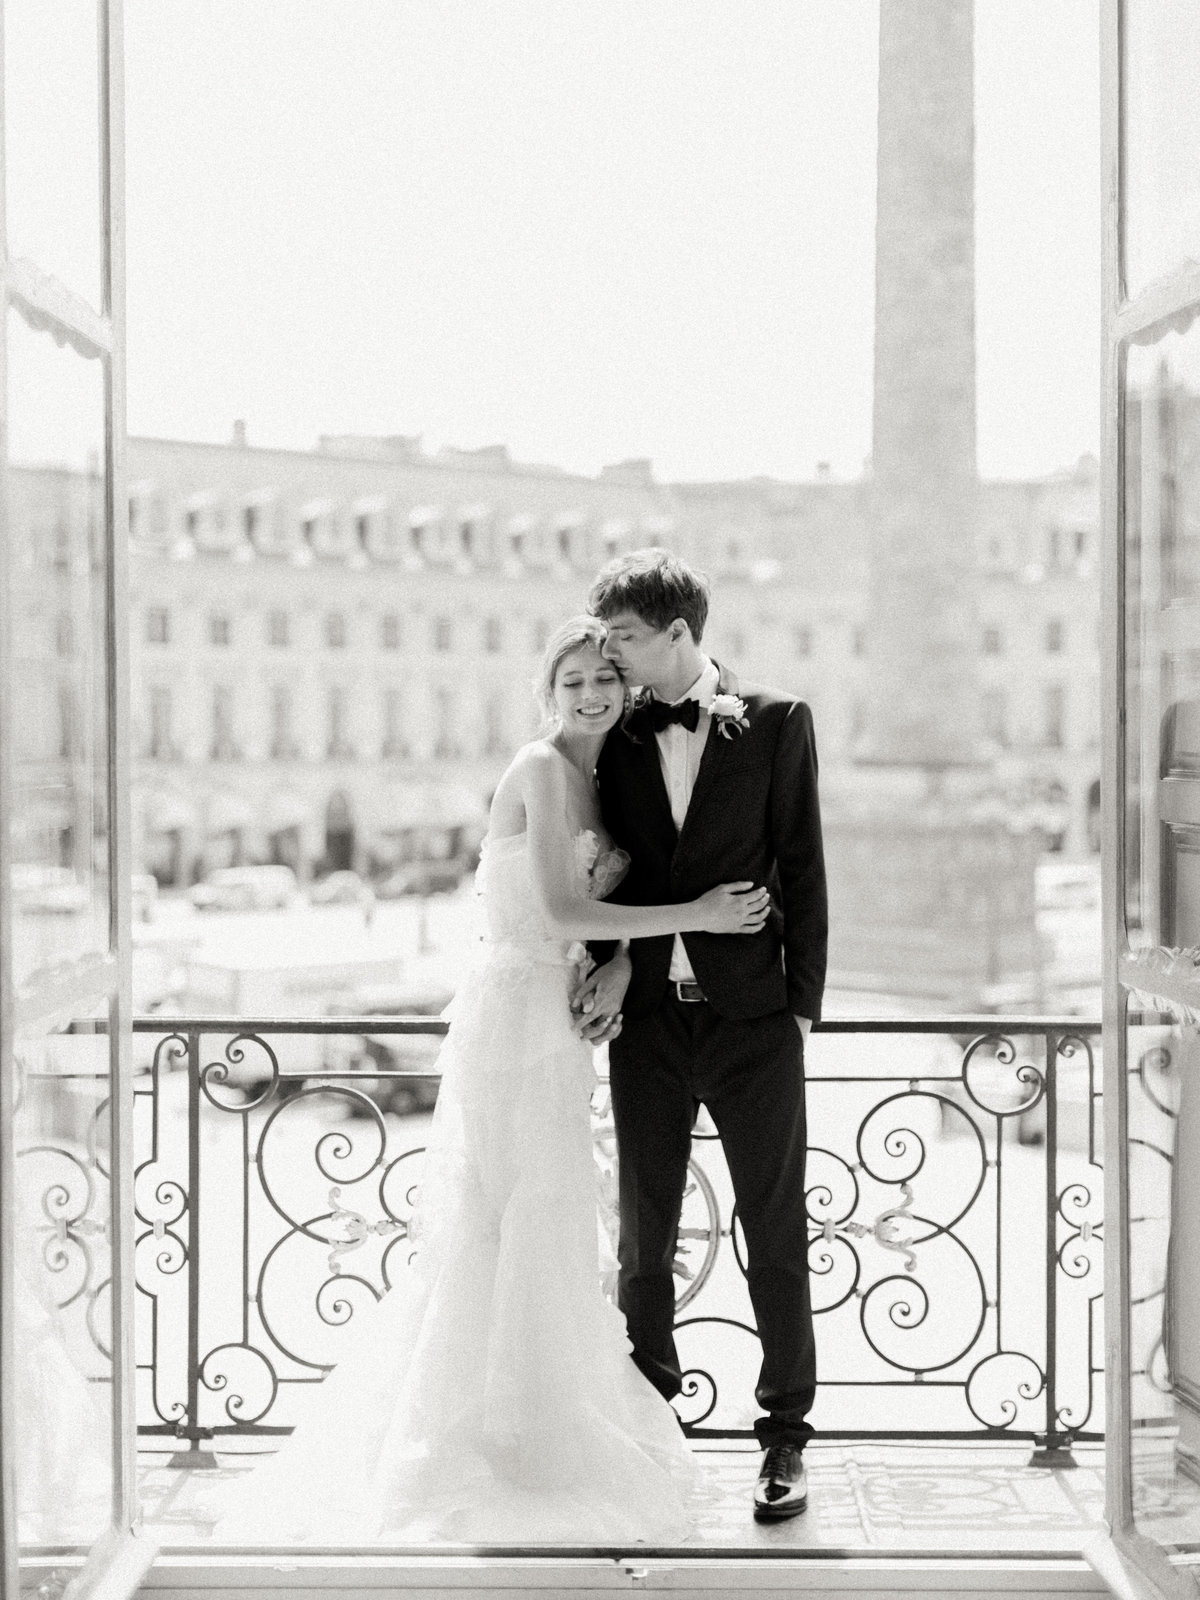 Bride and Groom-Parisian Wedding at Hotel D'Evreux